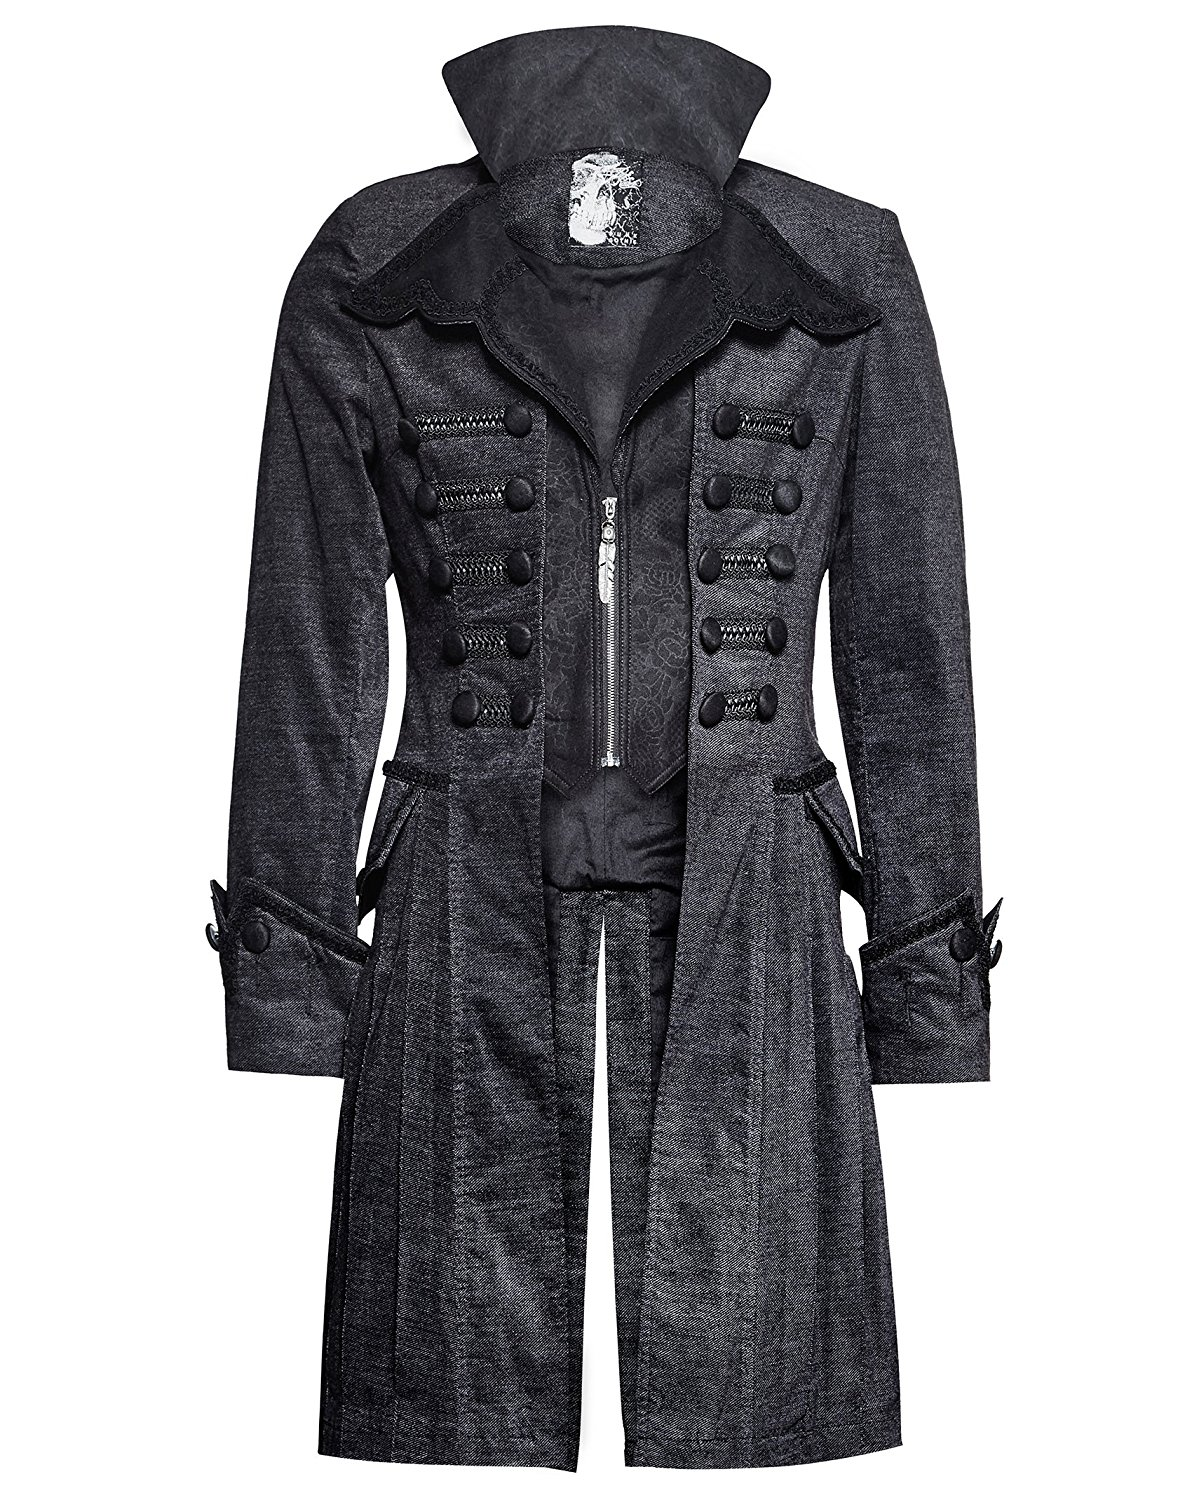 8c16064e Get Quotations · Punk Rave Mens Gothic Steampunk Jacket Coat Victorian  Military Style Winter Vintage CorduroyTrench Coat